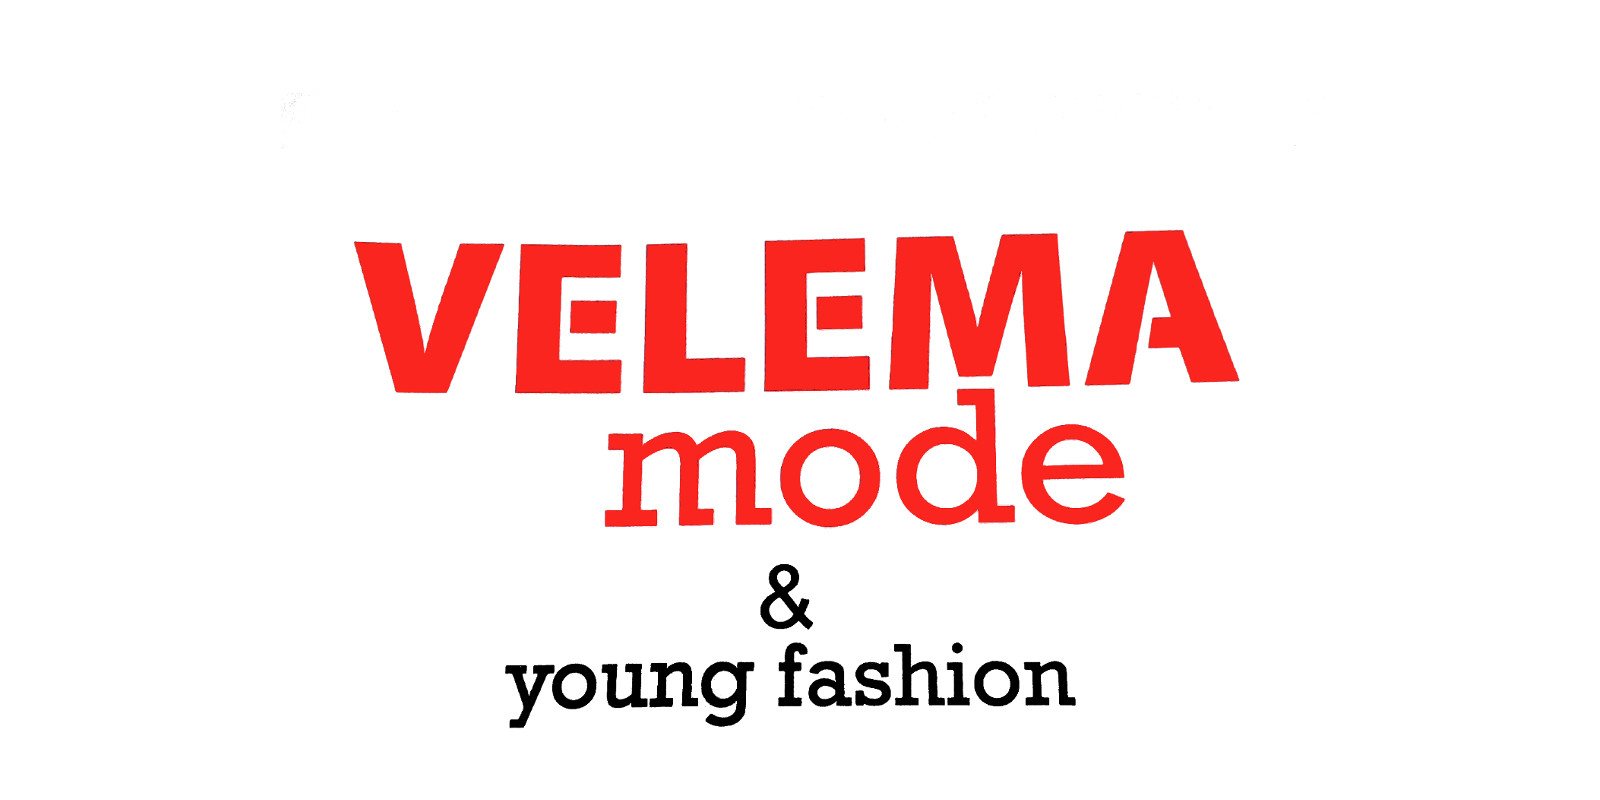 Velema mode & Young fashion